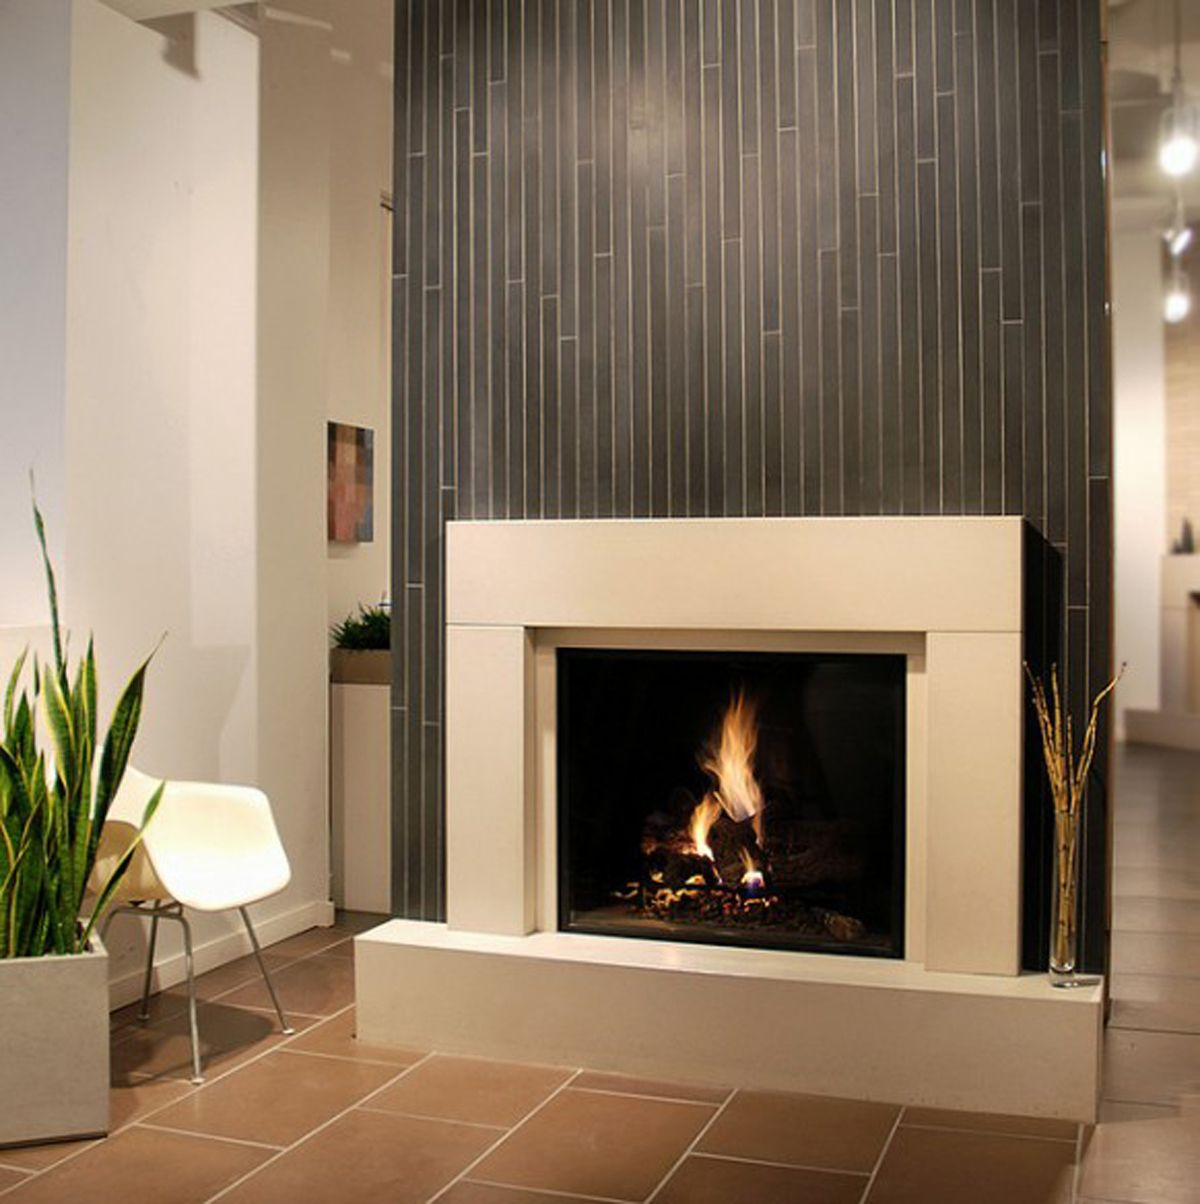 Fireplace Walls Ideas 25 Stunning Fireplace Ideas To Steal